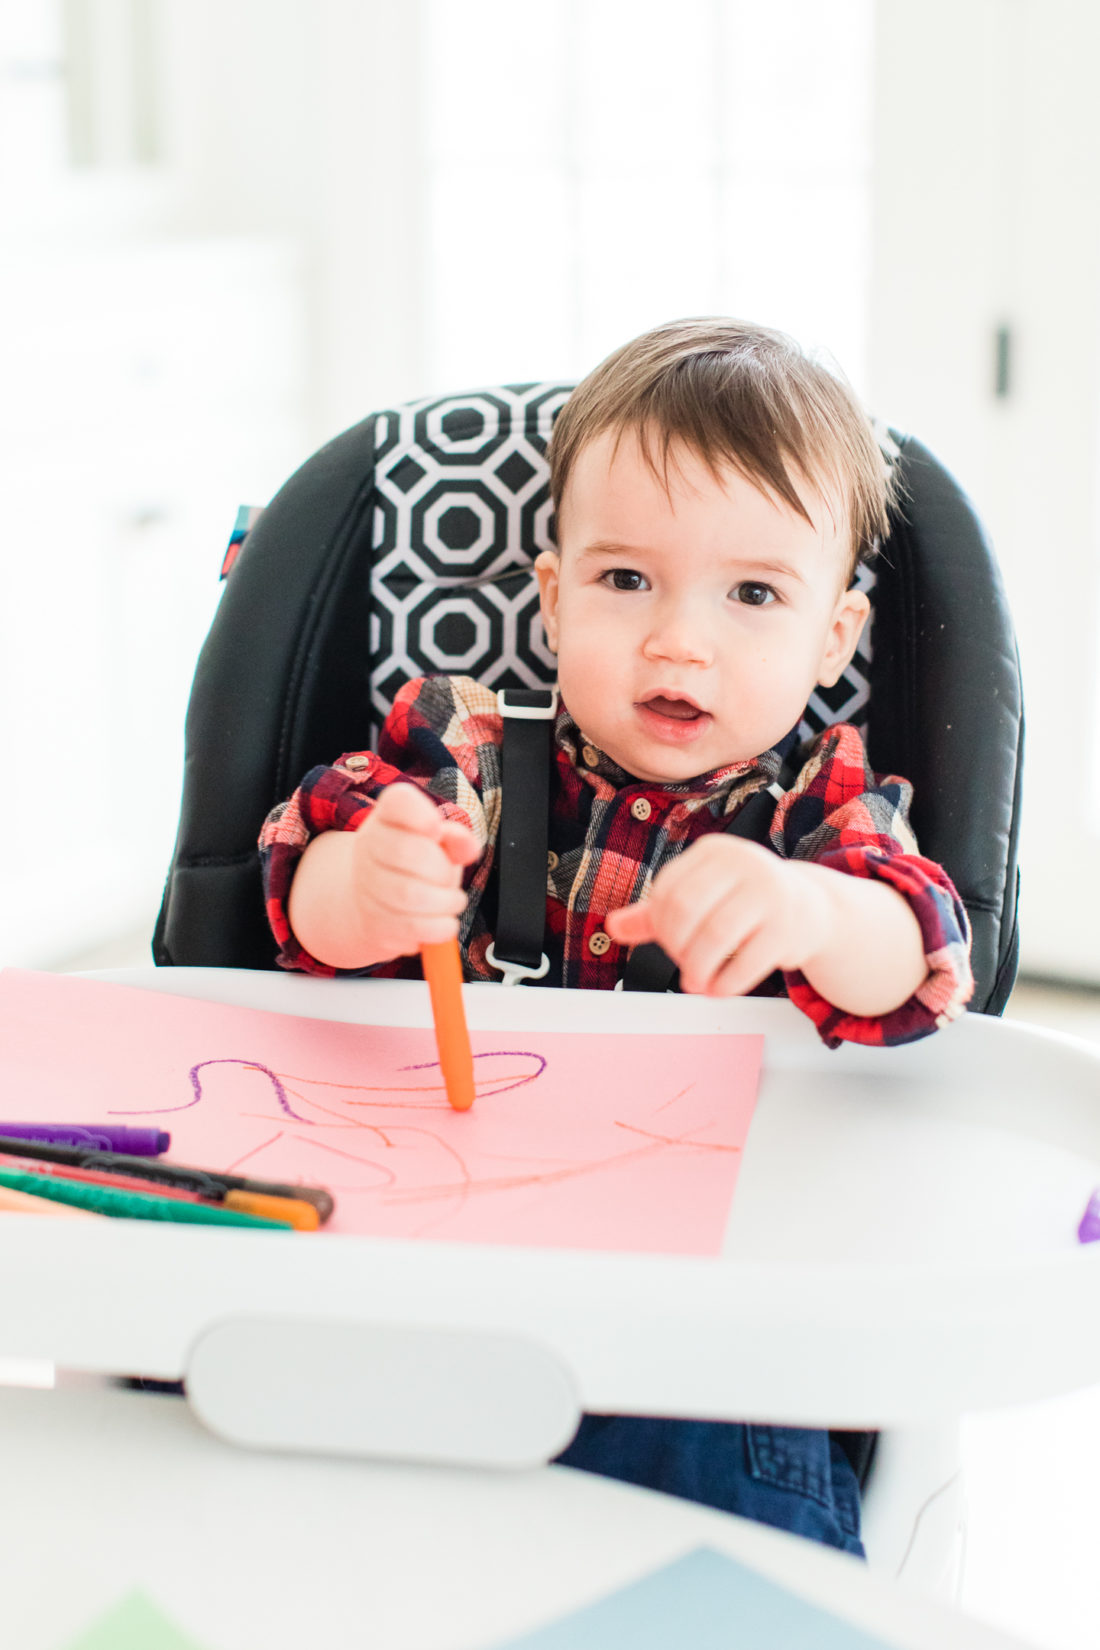 Major Martino crafts homemade Valentine's Day cards with his Mom and sister